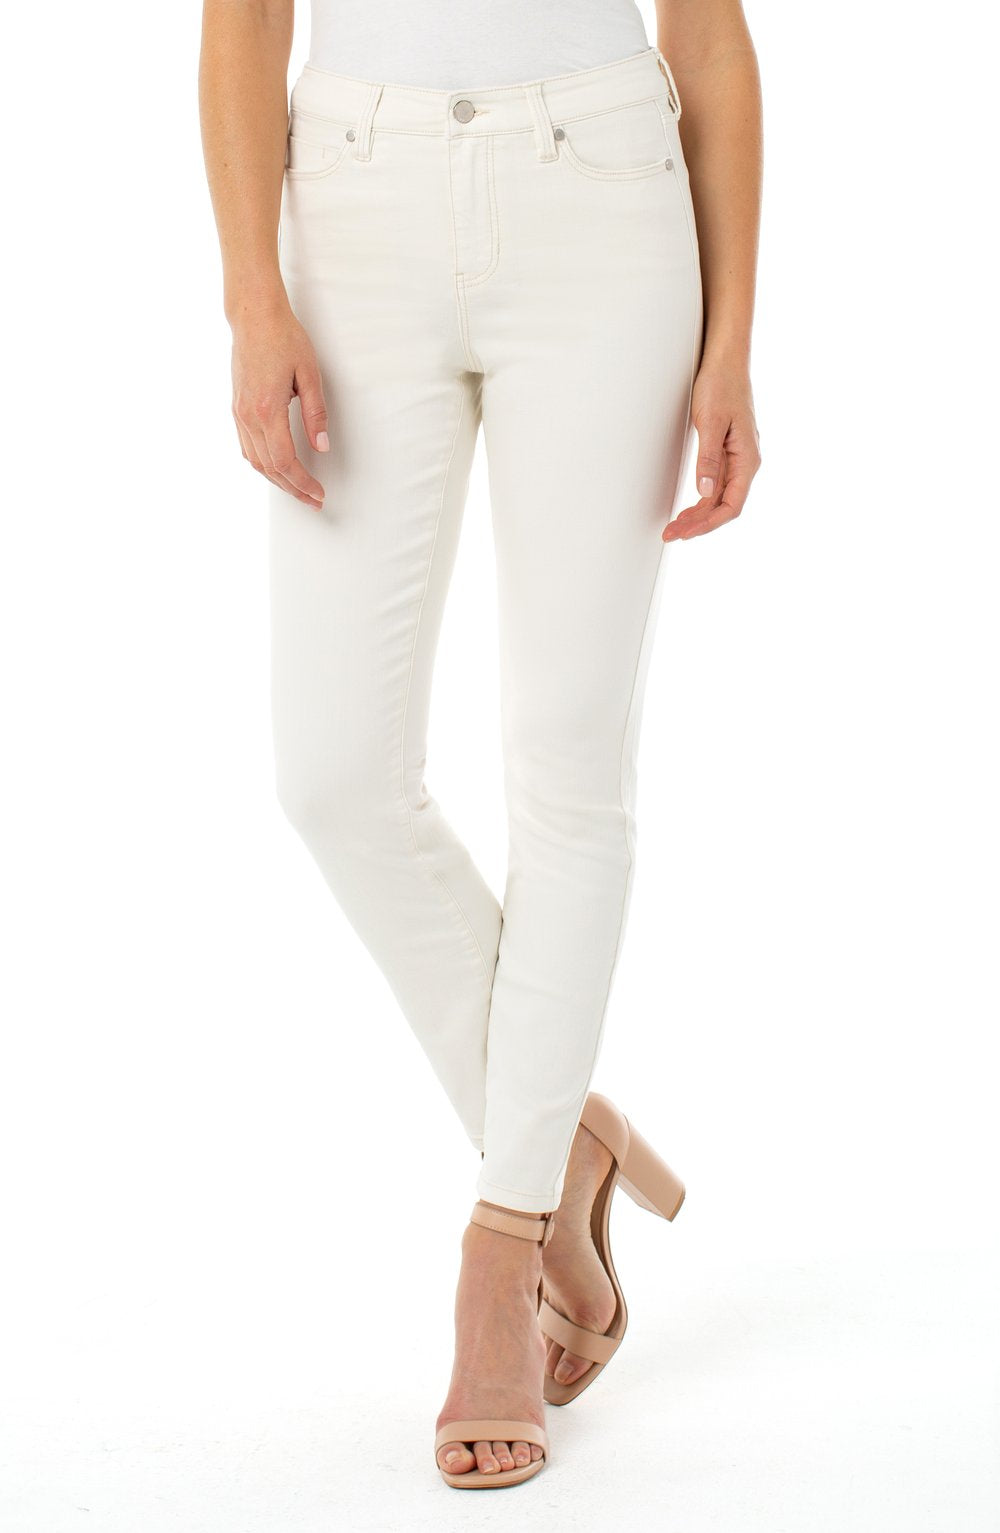 Liverpool - Abby Ankle Skinny Cream Tan Stretch Jeans